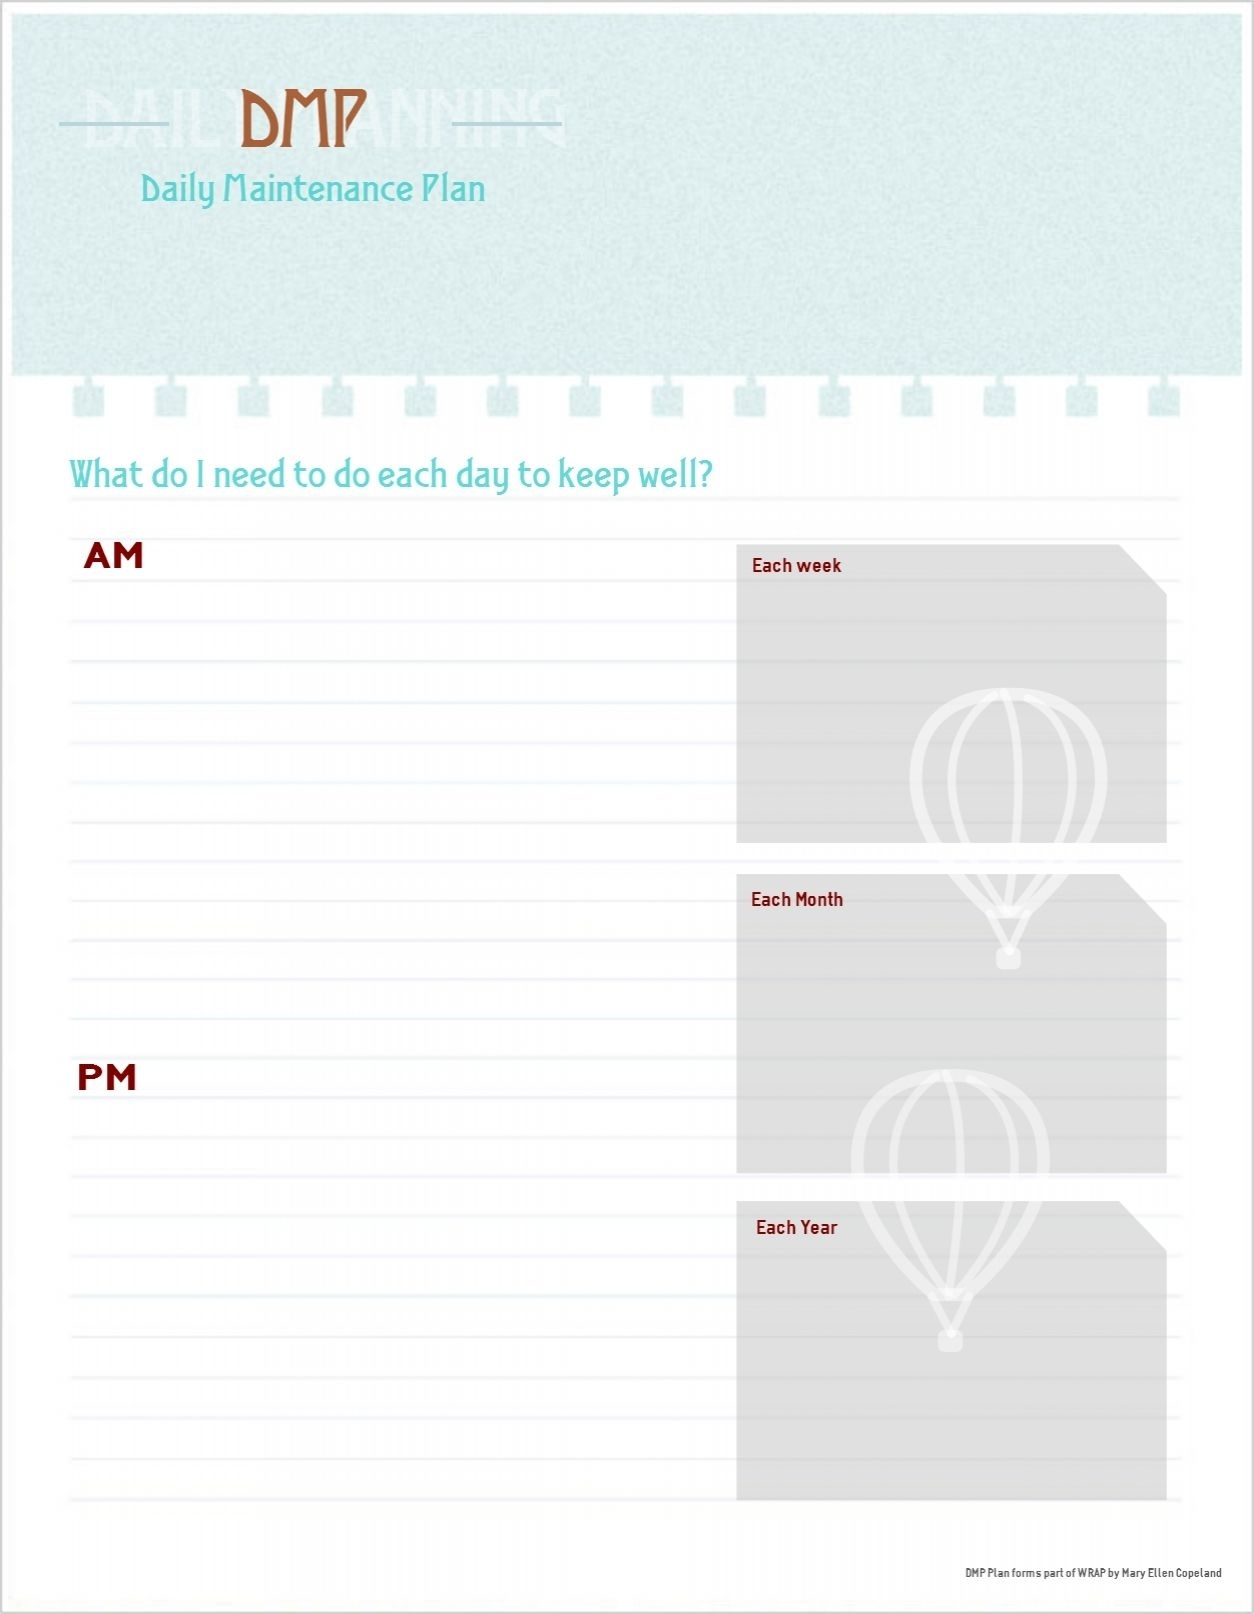 Daily Maintenance Plan Template- Free Printable. | Good Idea inside Blank Weekly Calendar For Structured Recovery